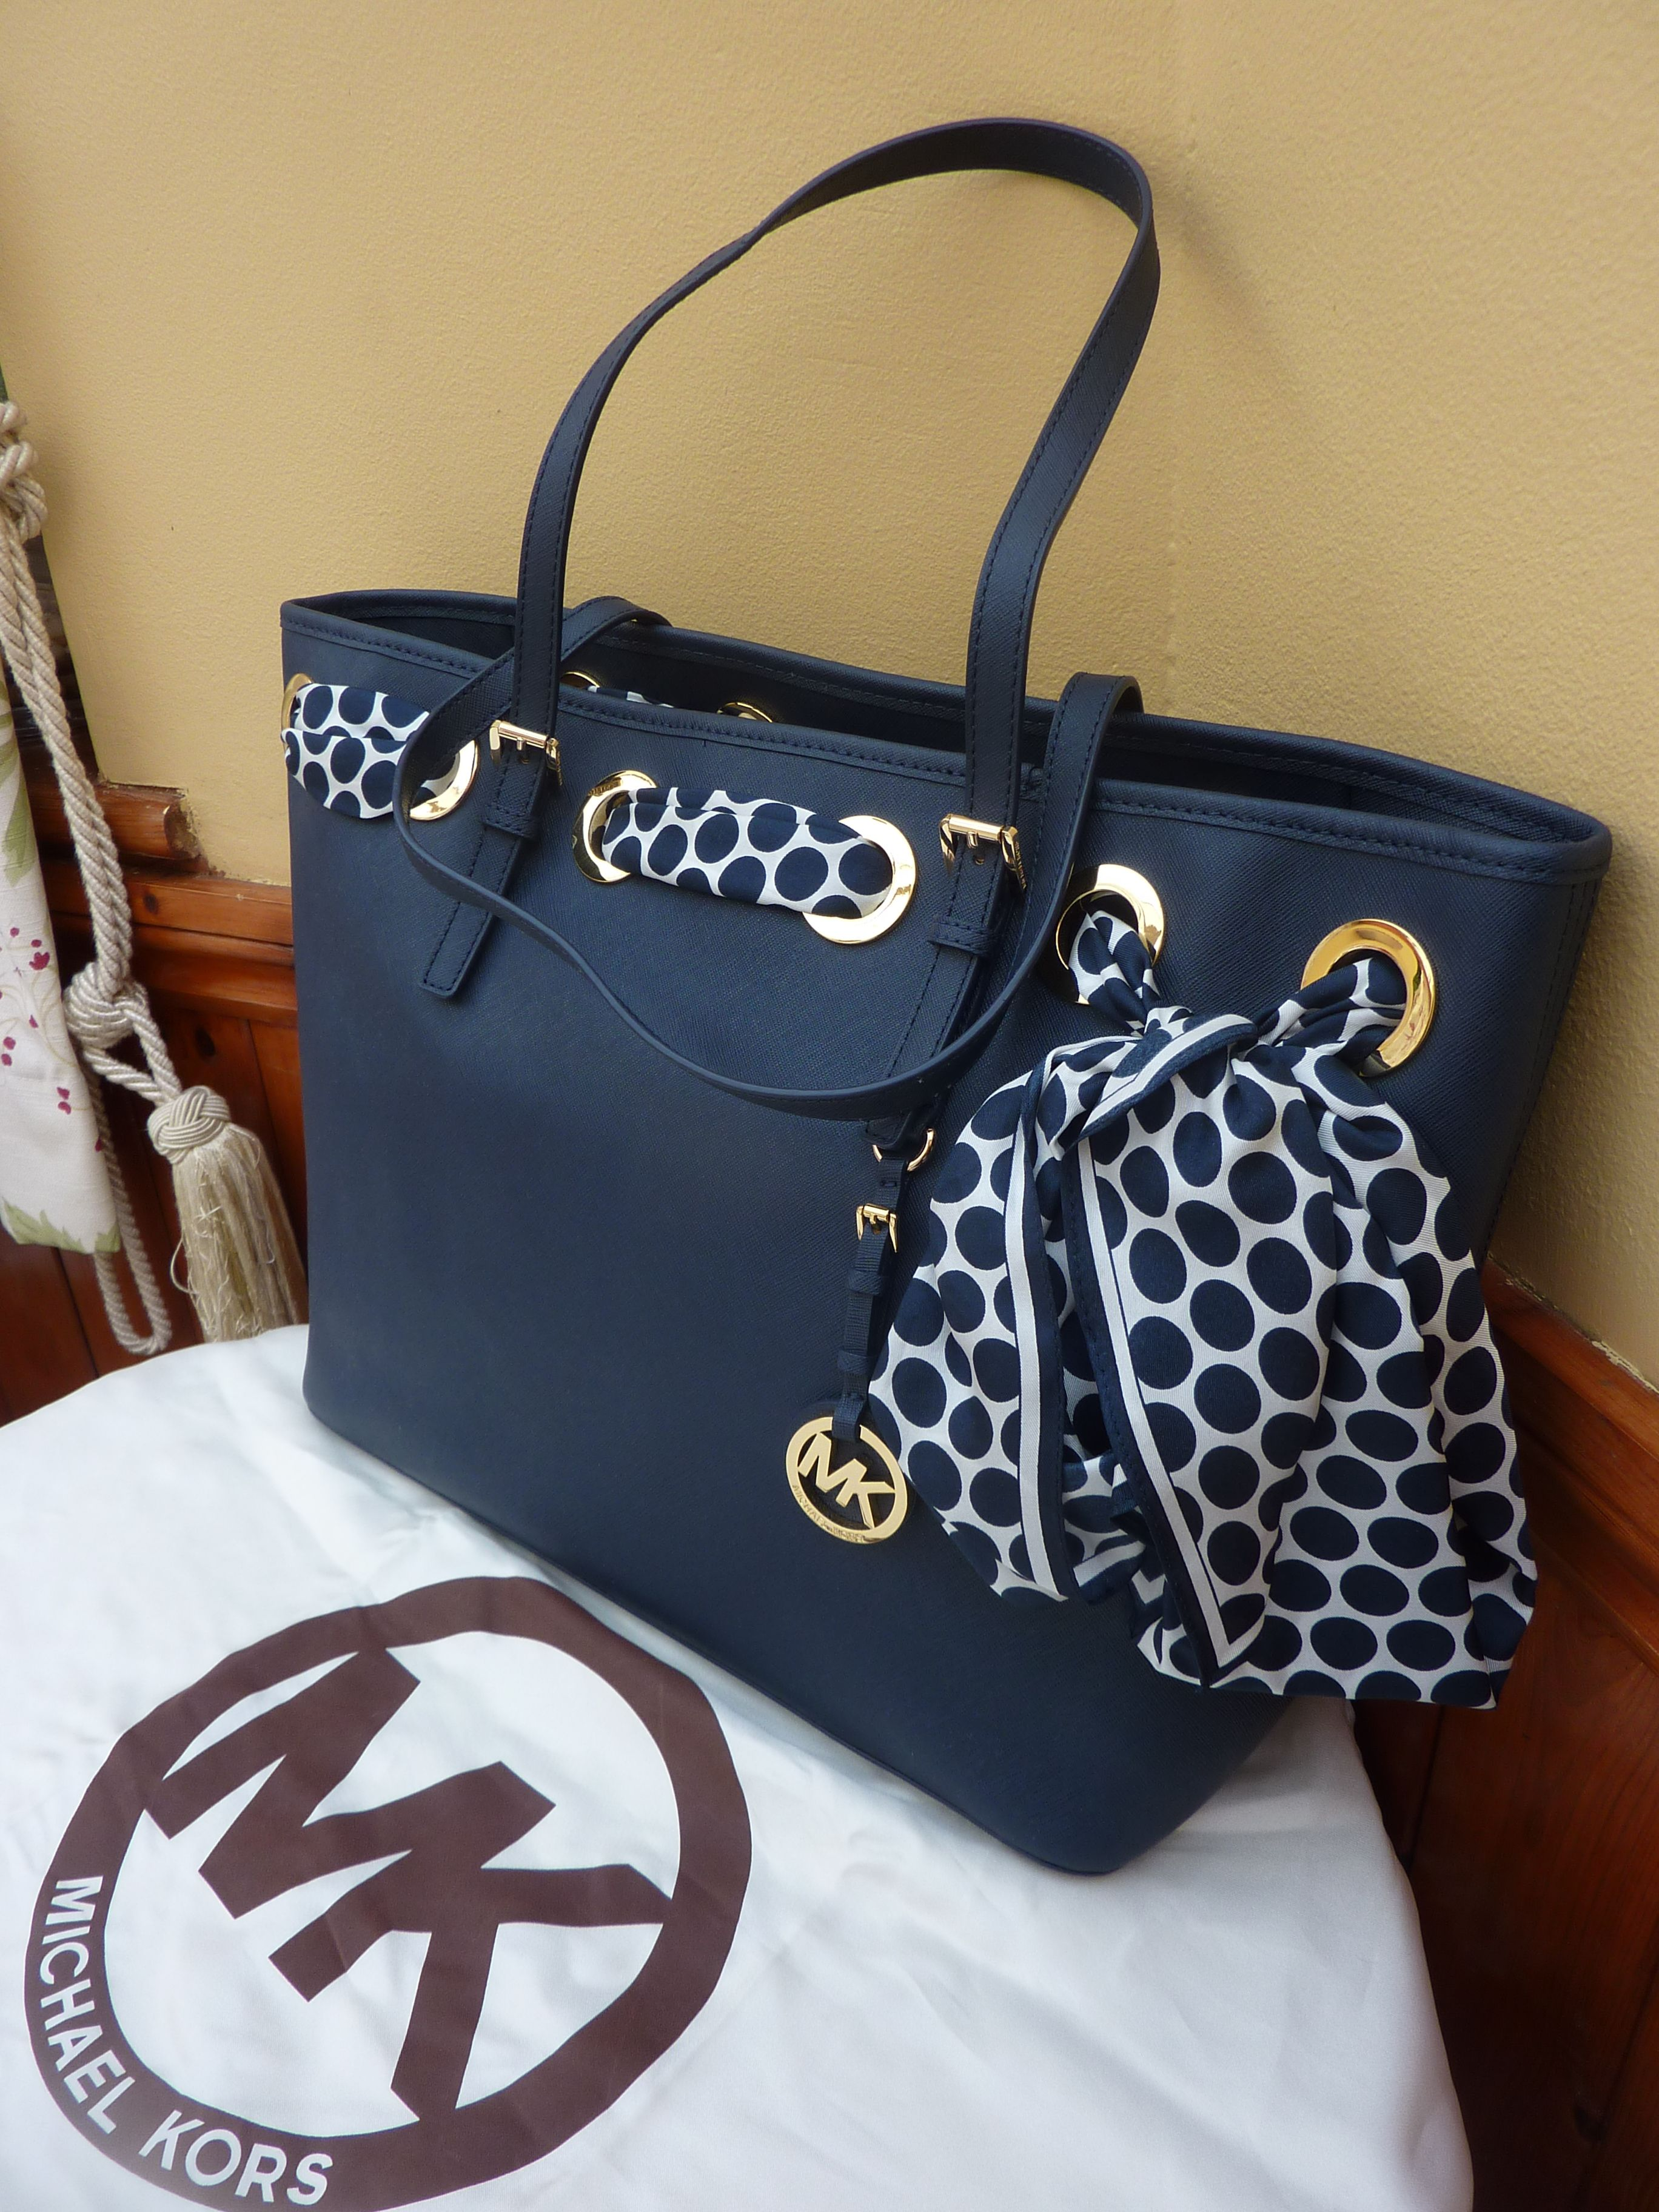 363dbcb002 Genuine Michael Kors Saffiano Jet Set Navy Leather  Scarf  Tote Bag +  Dustbag!